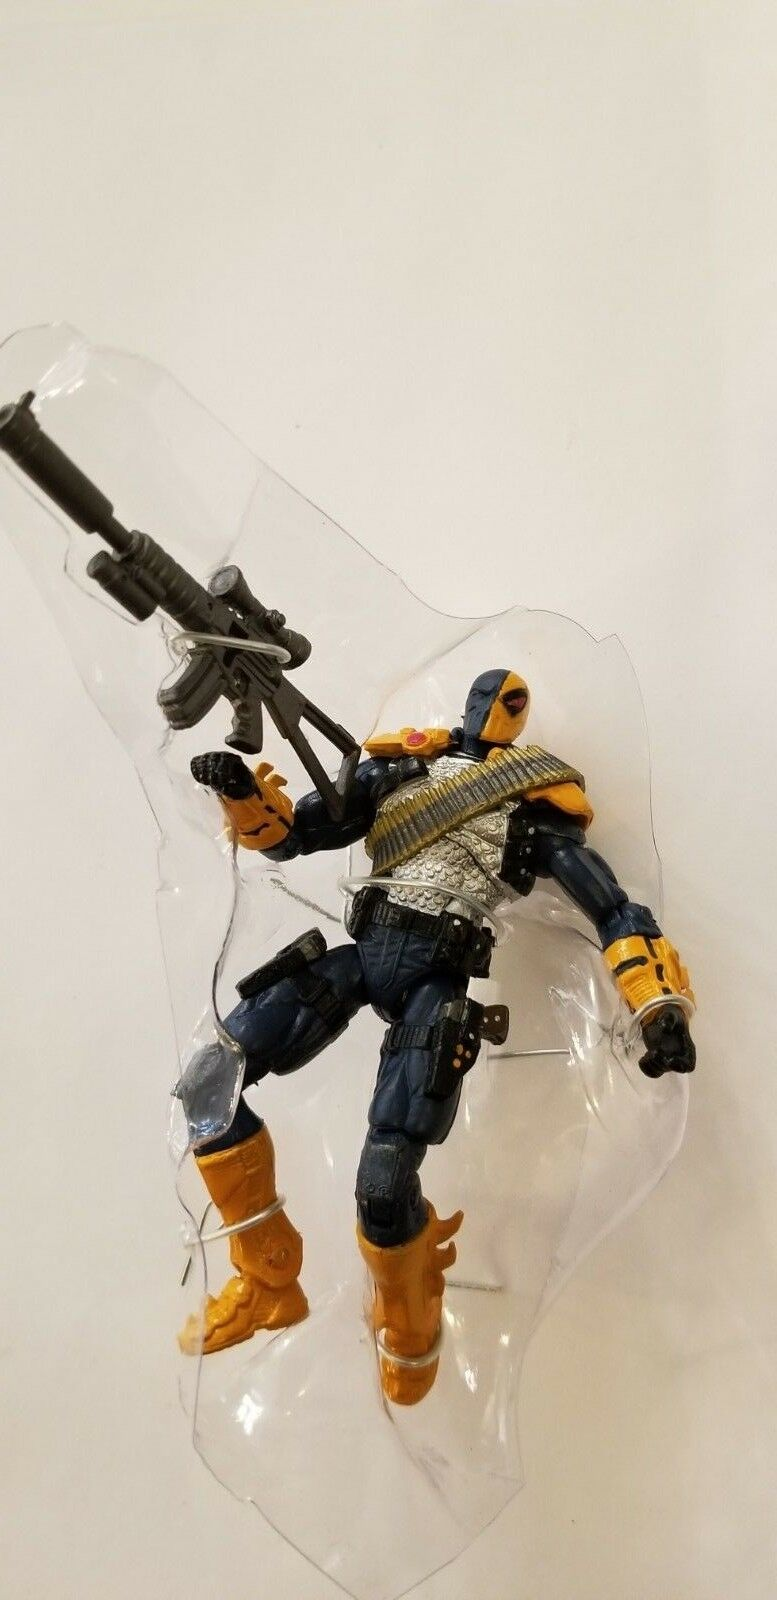 DC COLLECTIBLES 3.75  INJUSTICE DEATHSTROKE FIGURE  B